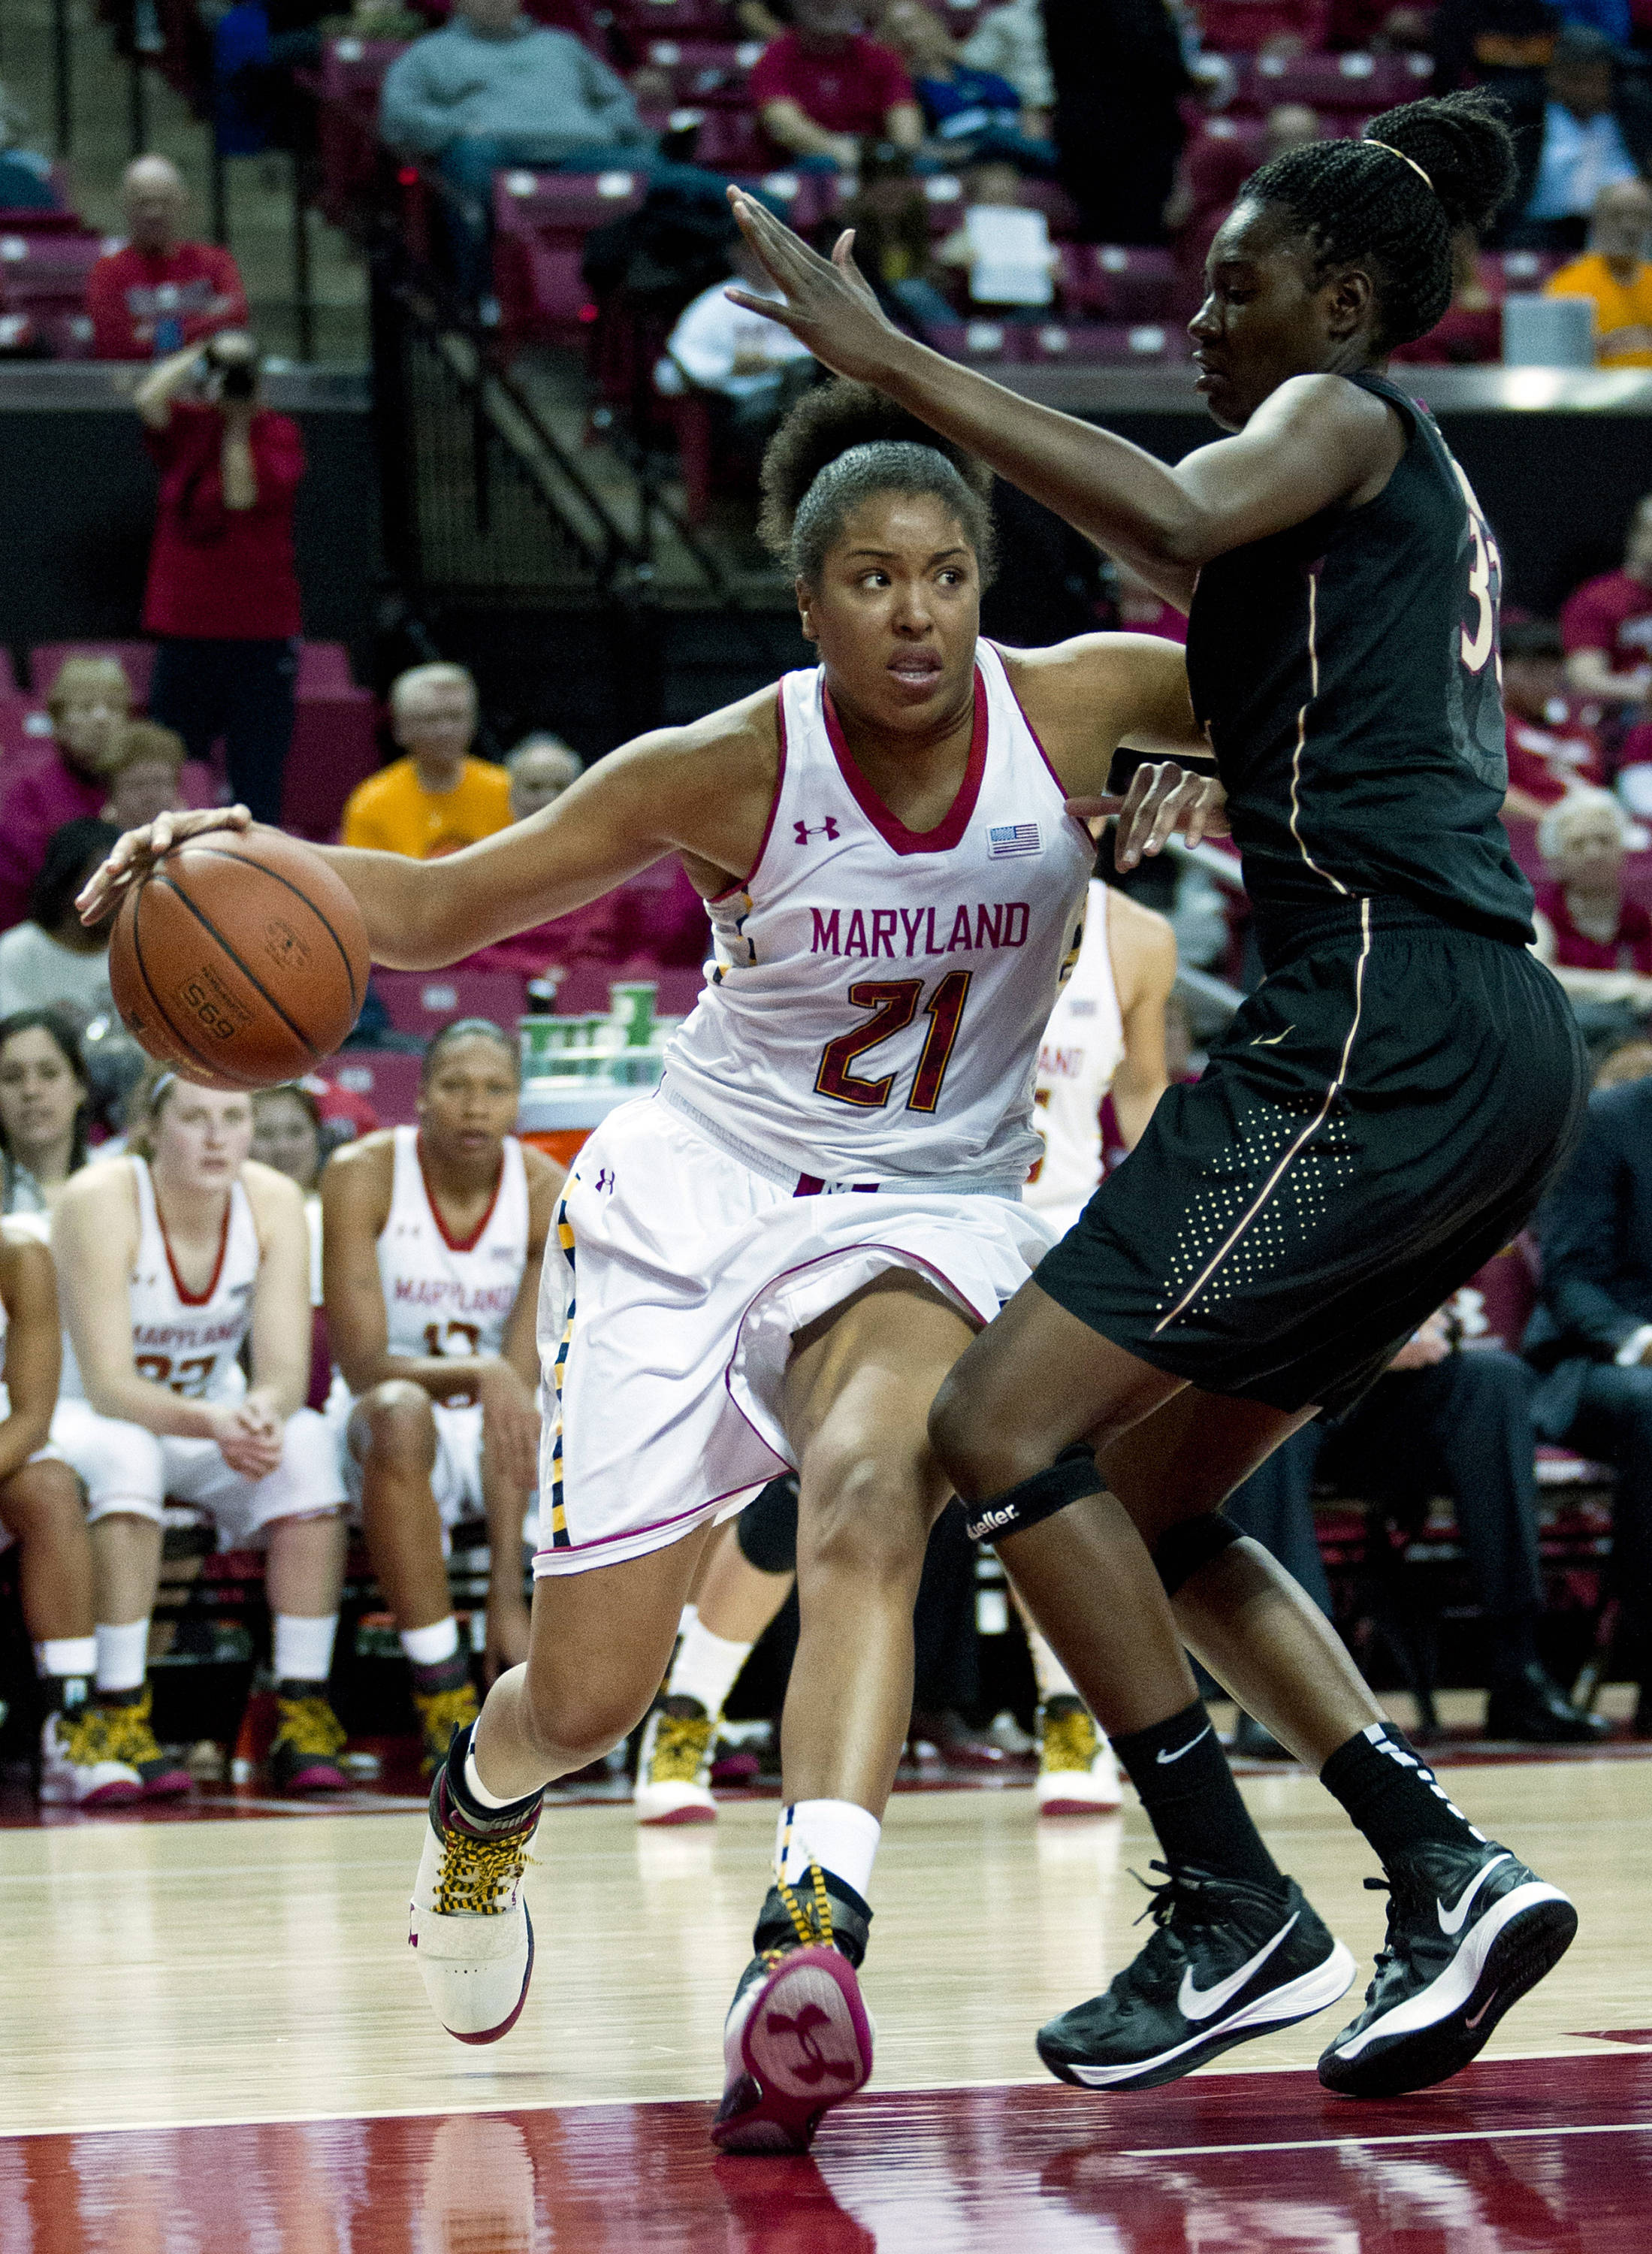 Maryland's Tianna Hawkins (21) moves the ball against Florida State's Natasha Howard during the second half. (AP Photo/Jose Luis Magana)